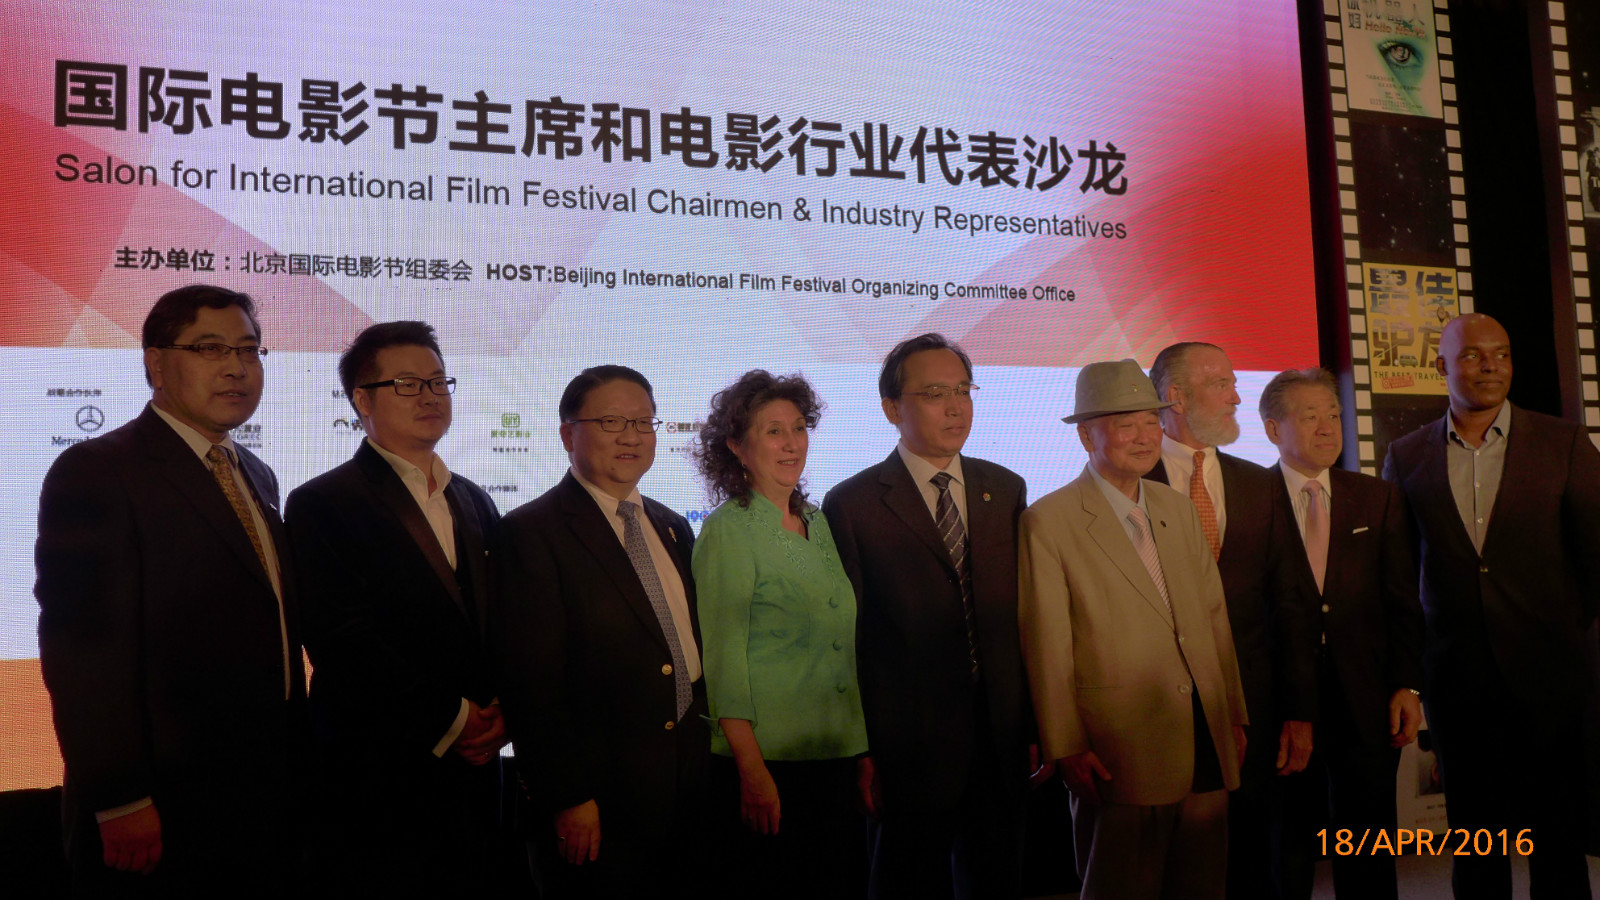 Int'l Film Festival Organizers Attend Specialist Forum in Beijing